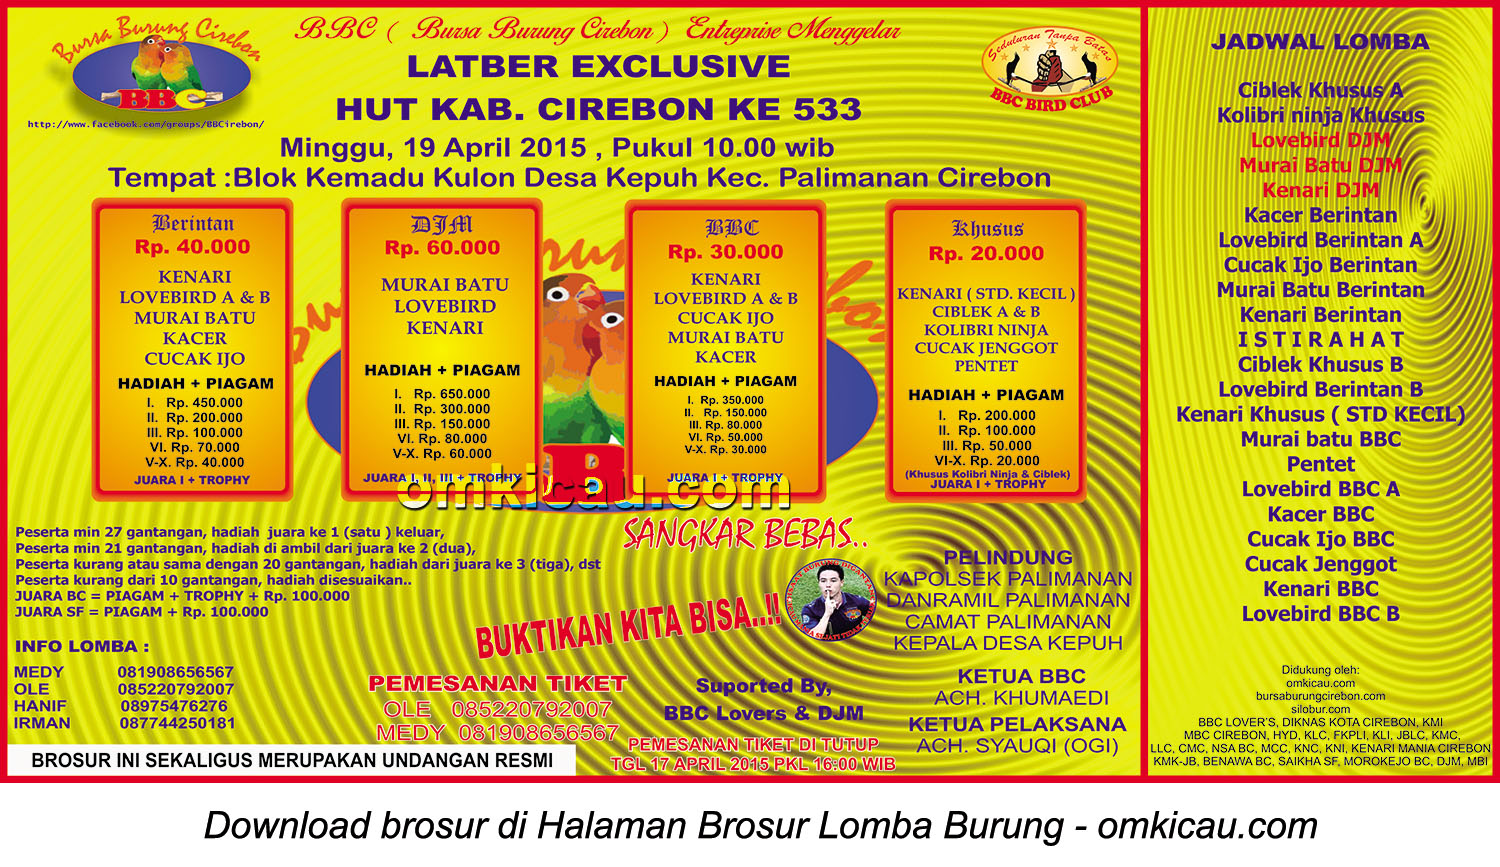 Brosur Latber Exclusive HUT Ke-533 Kabupaten Cirebon, 19 April 2015